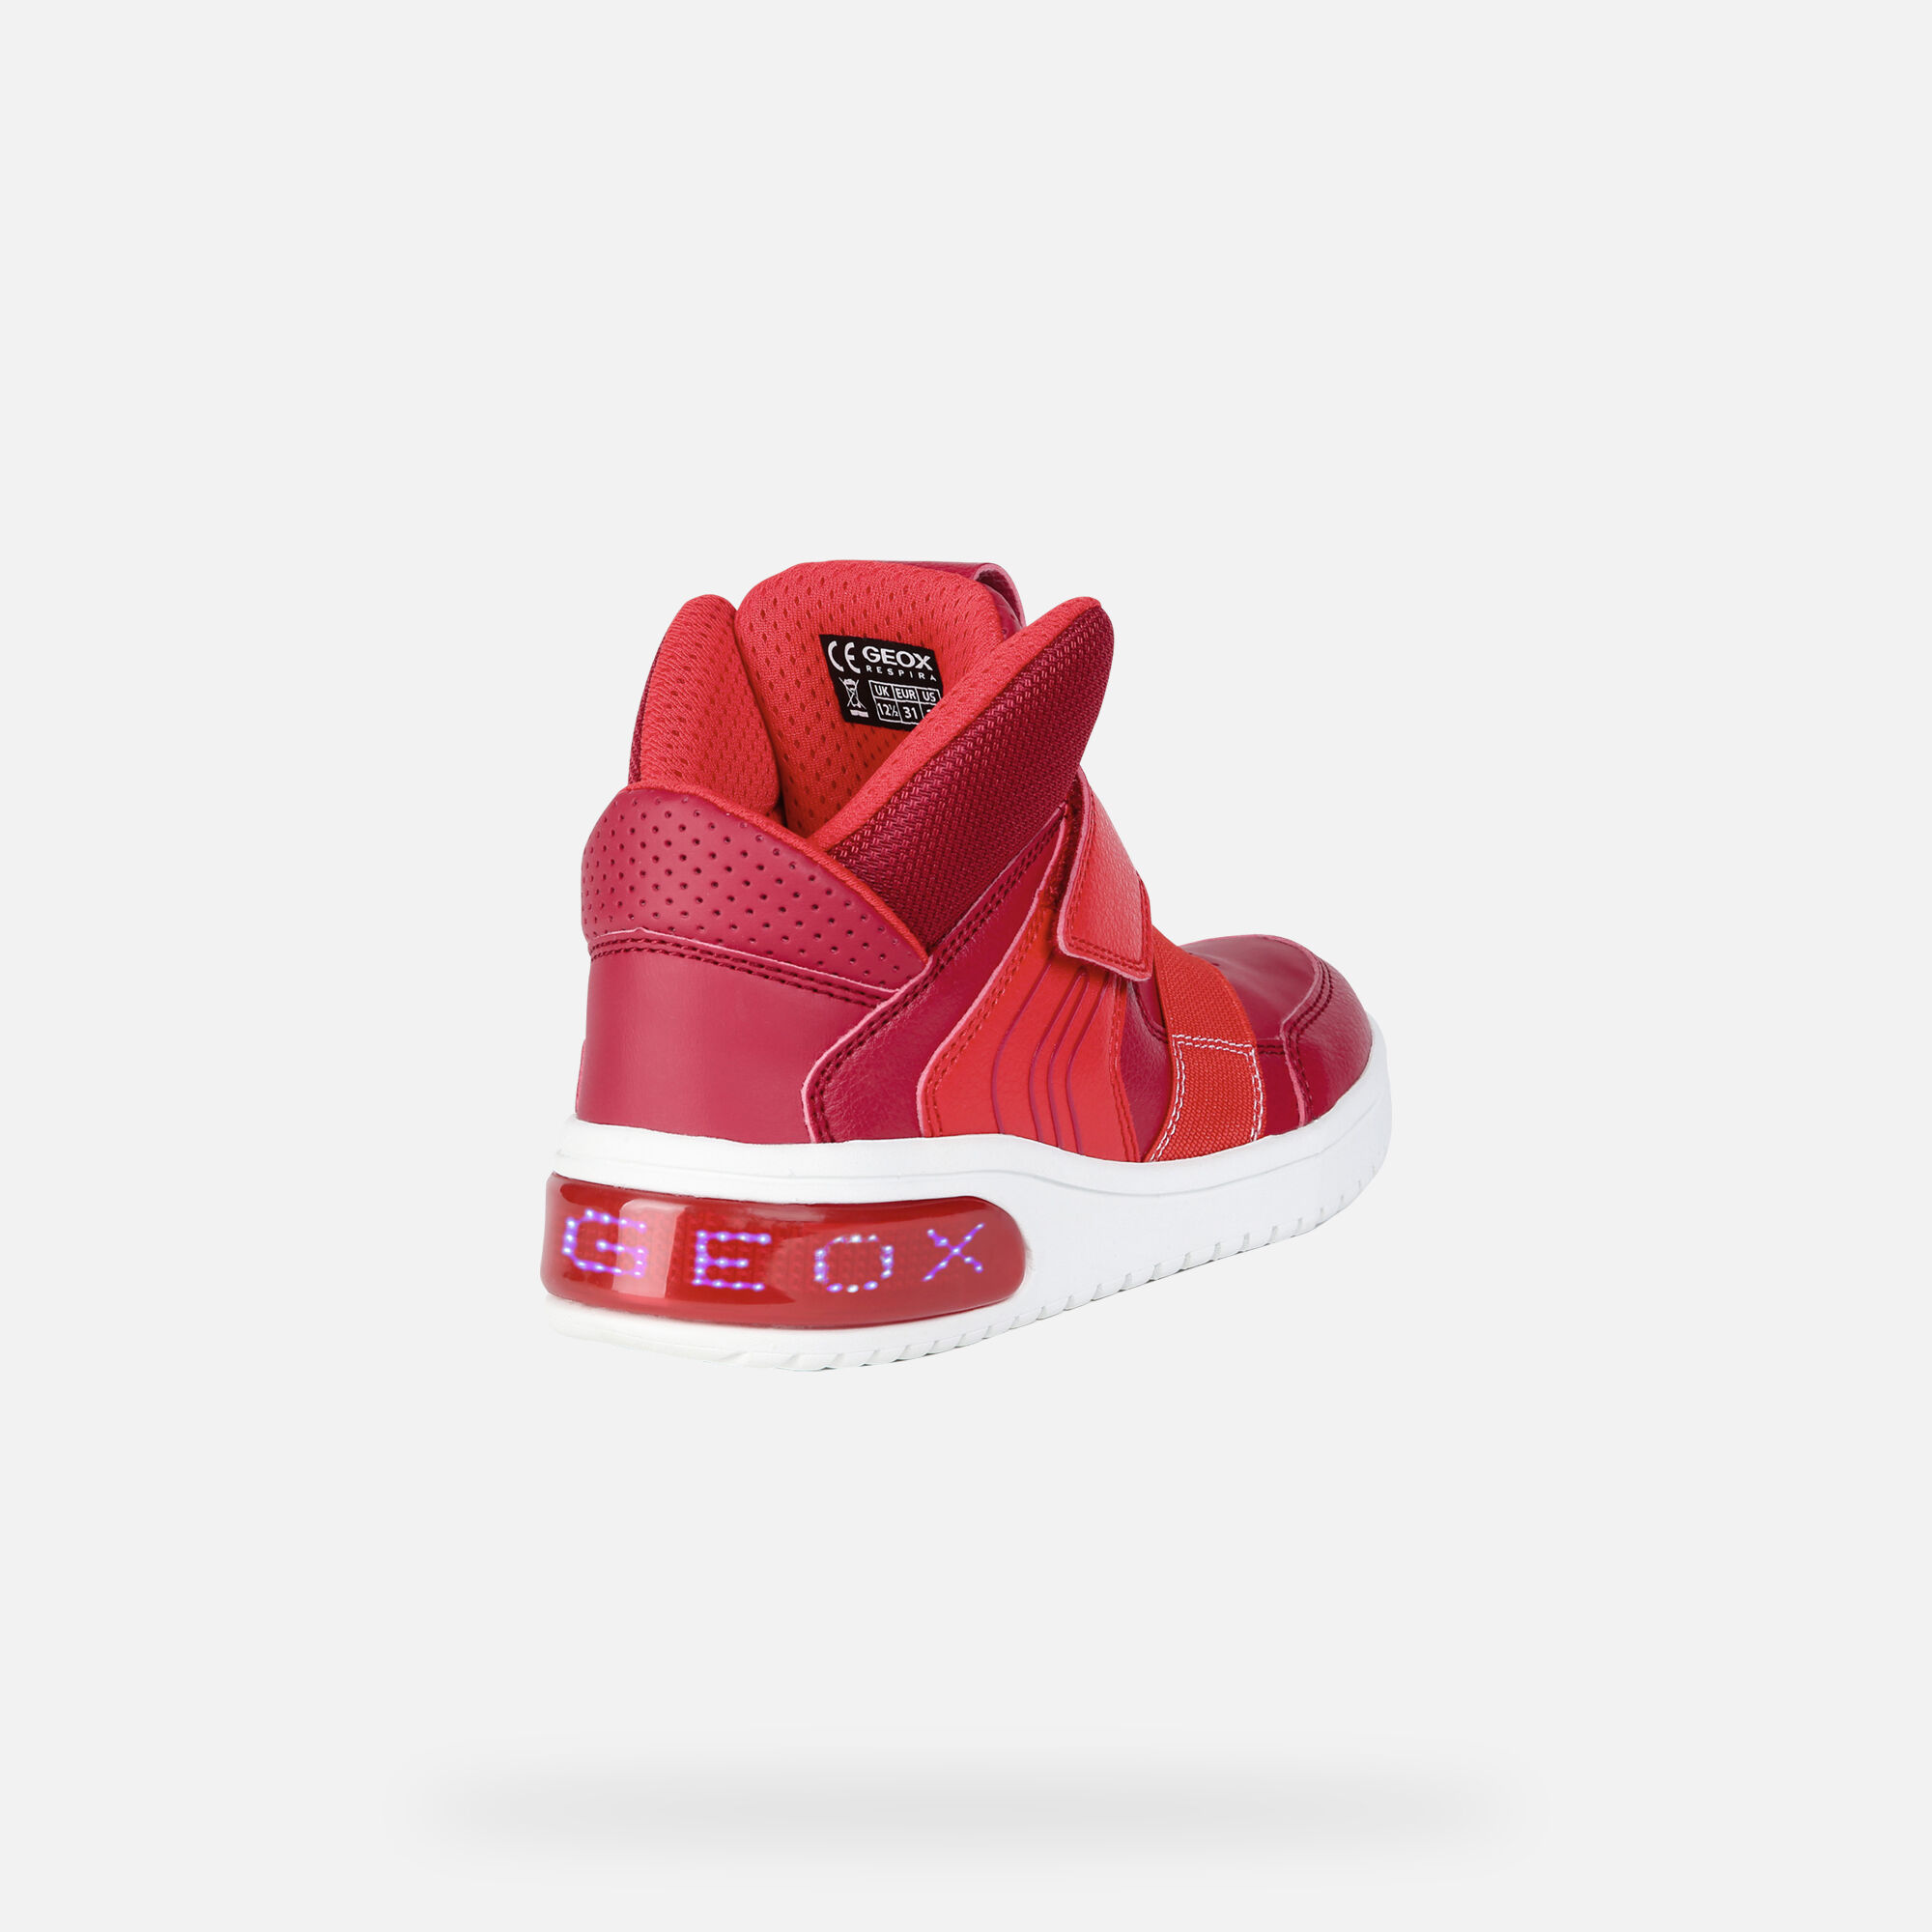 Geox XLED Junior Boy: Red Sneakers | Geox ® Official Store